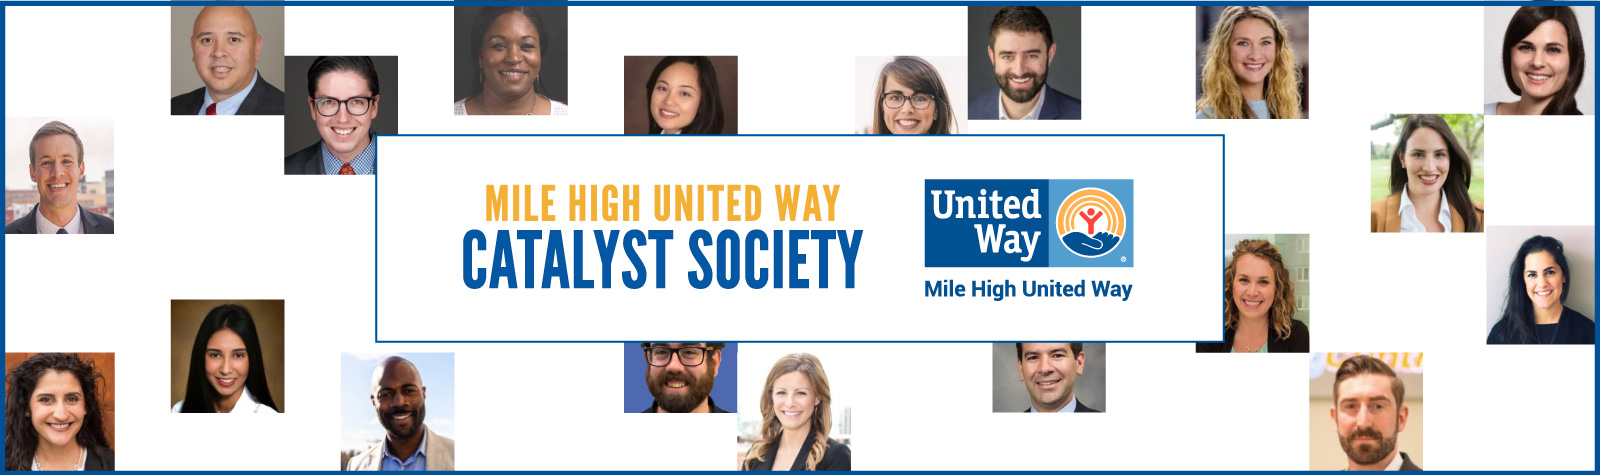 Learn more about joining Catalyst Society with Mile High United Way